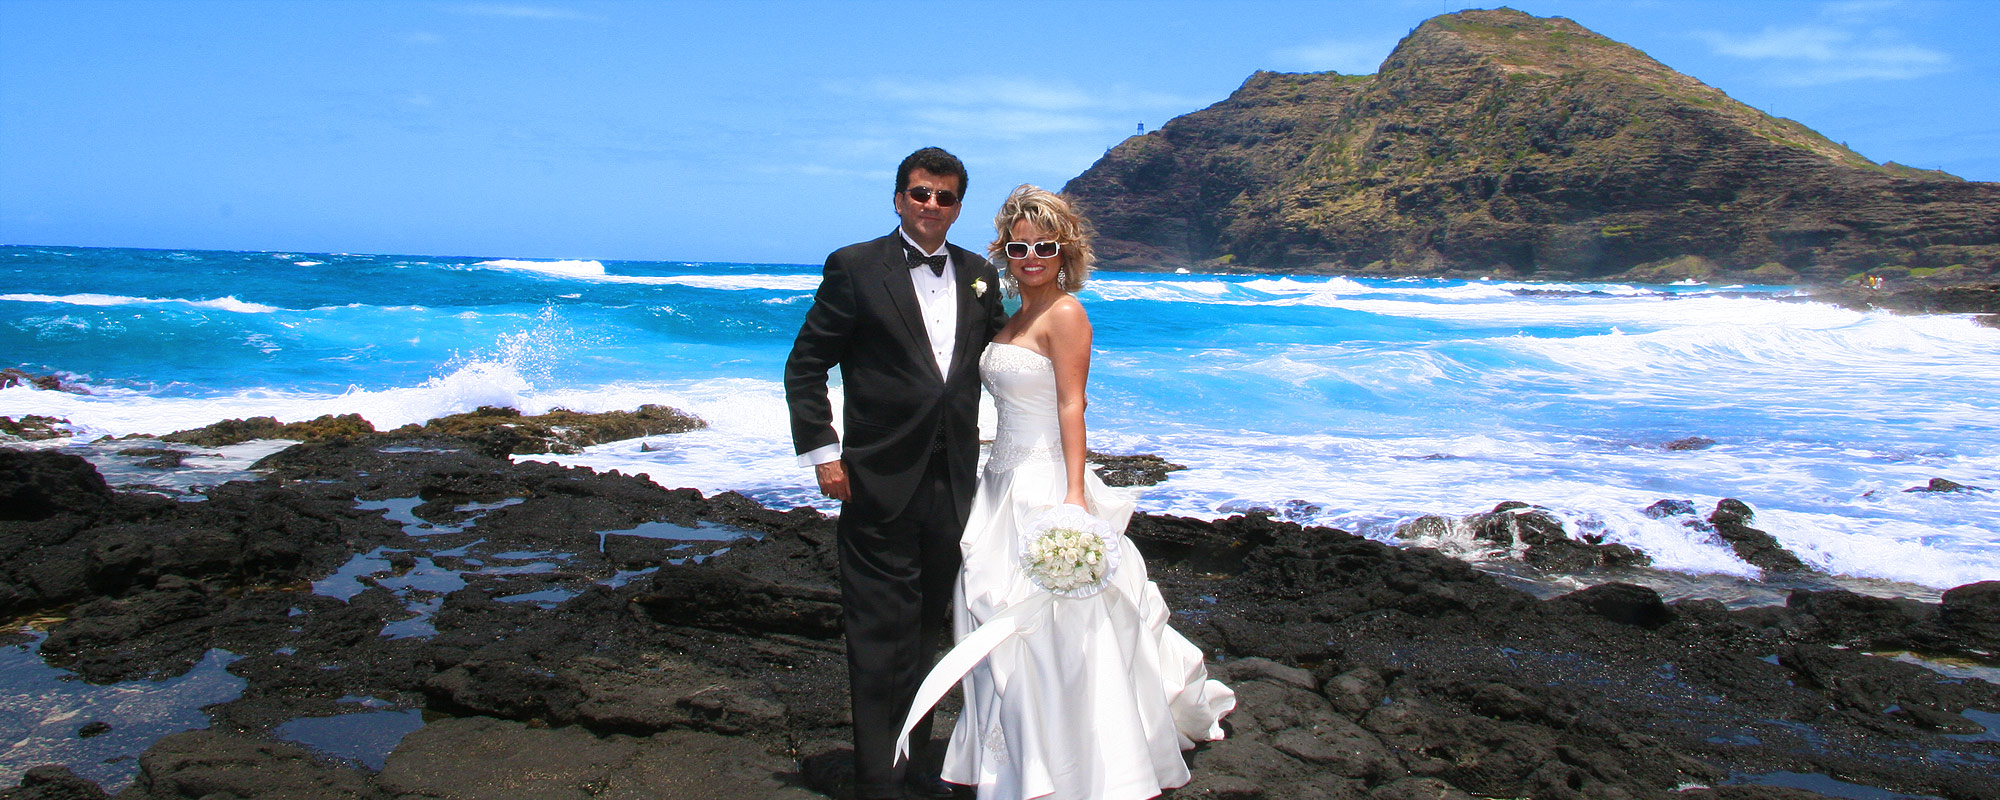 Makapuu Beach Hawaii Wedding